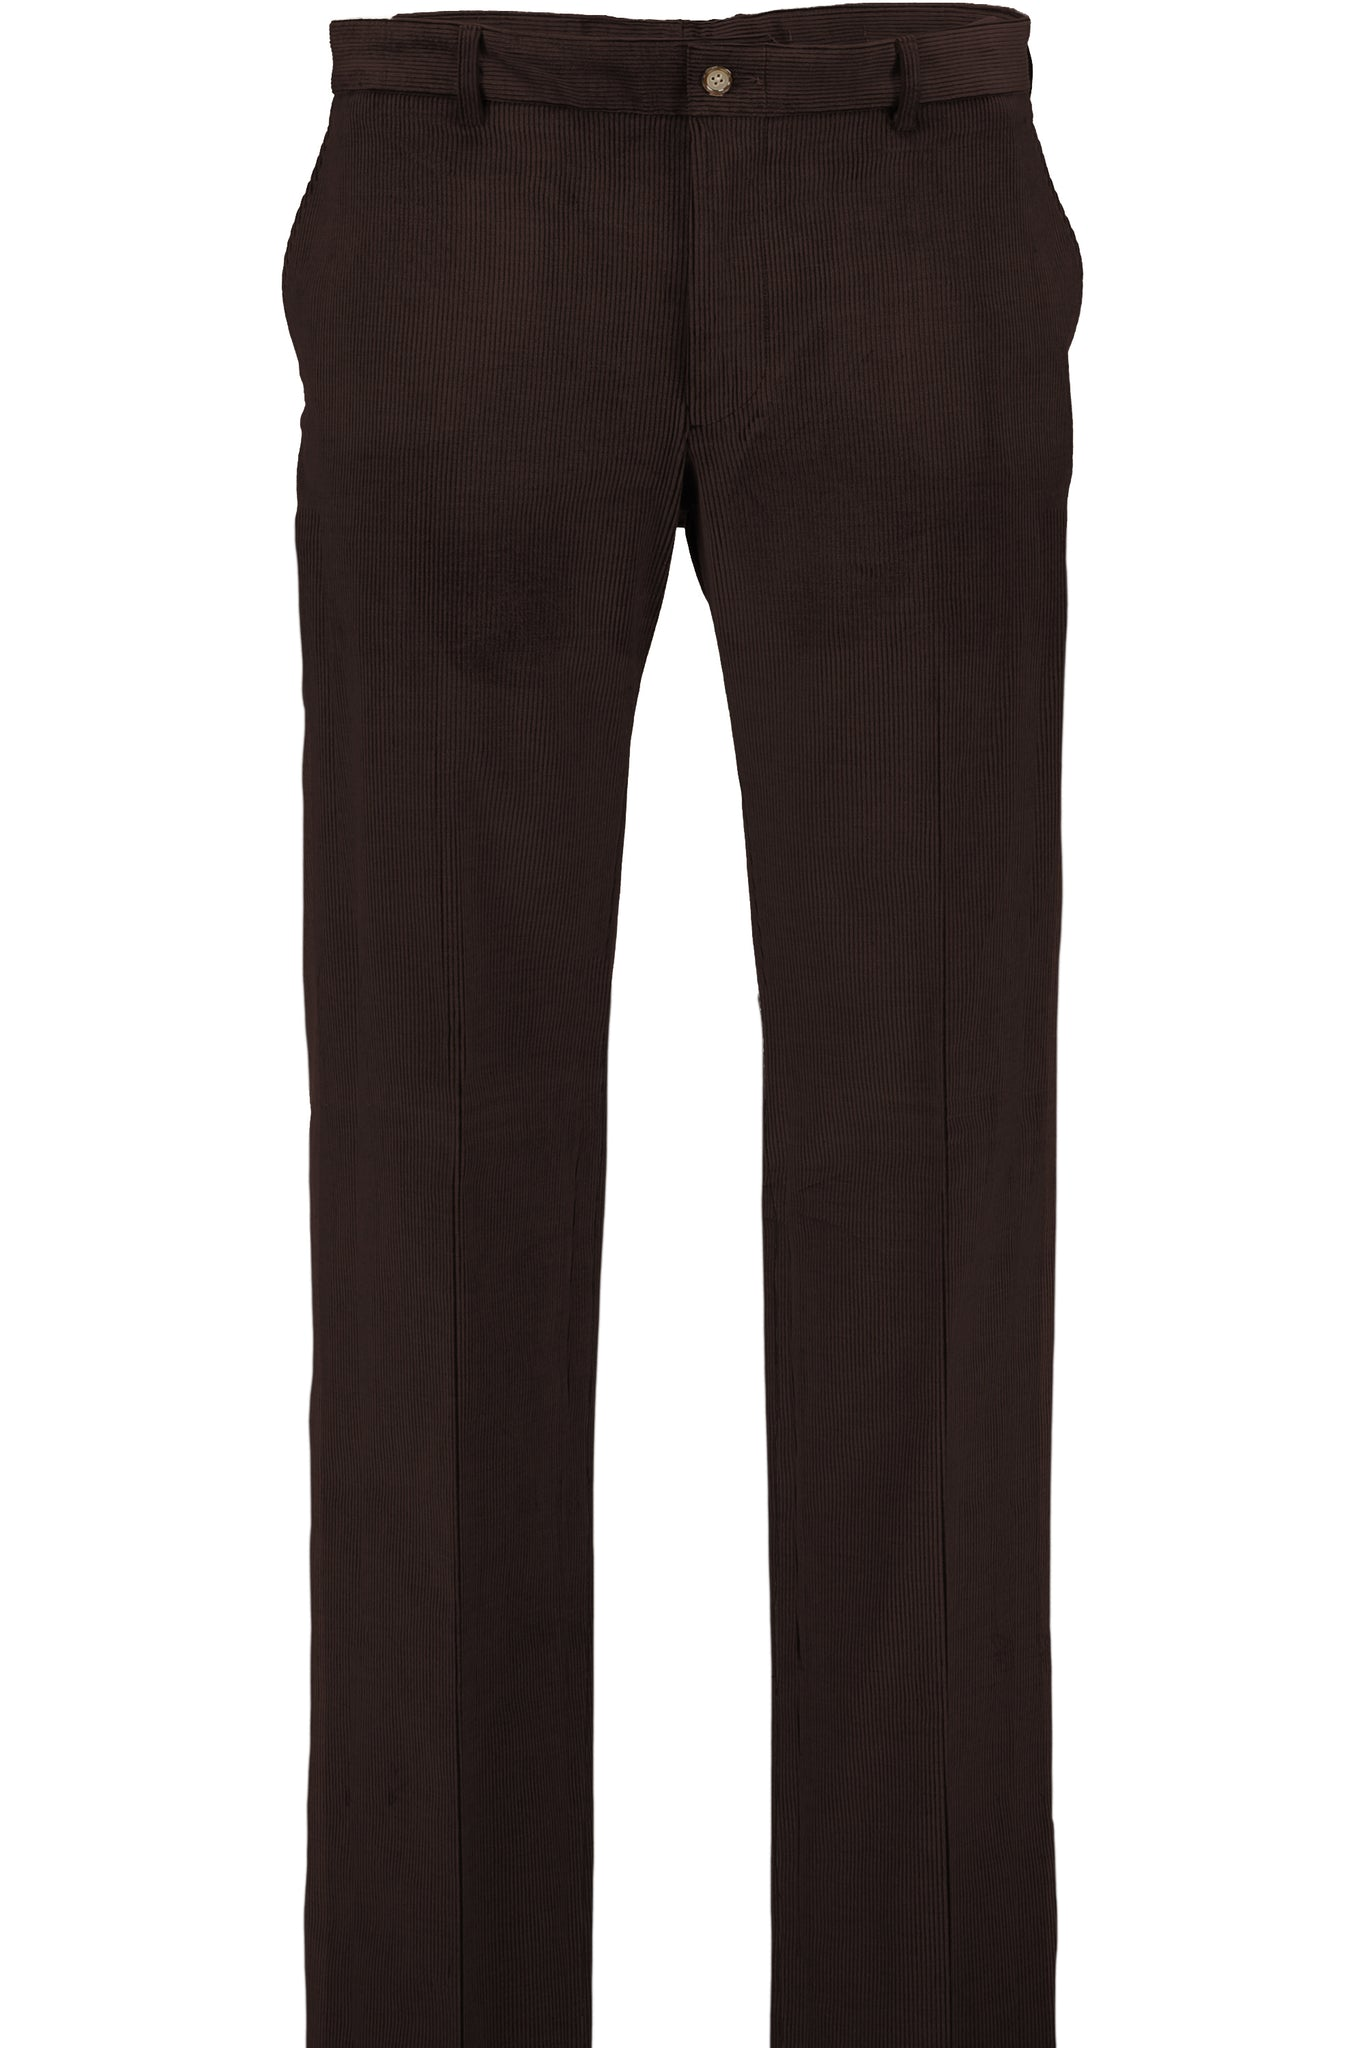 Modern Fit Brown Medium Wale Corduroy Flat Front Dress Pant -  Hardwick.com